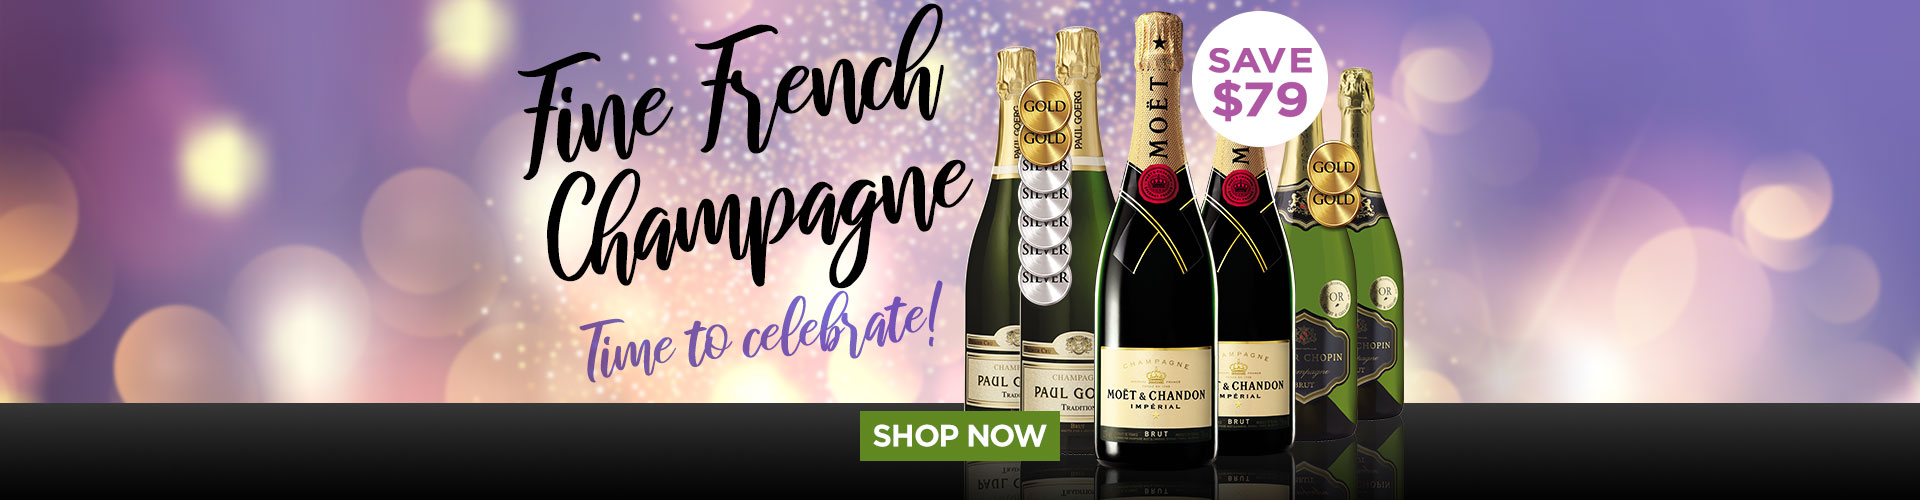 Fine French Champagne... Time to celebrate! SAVE $79 - SHOP NOW